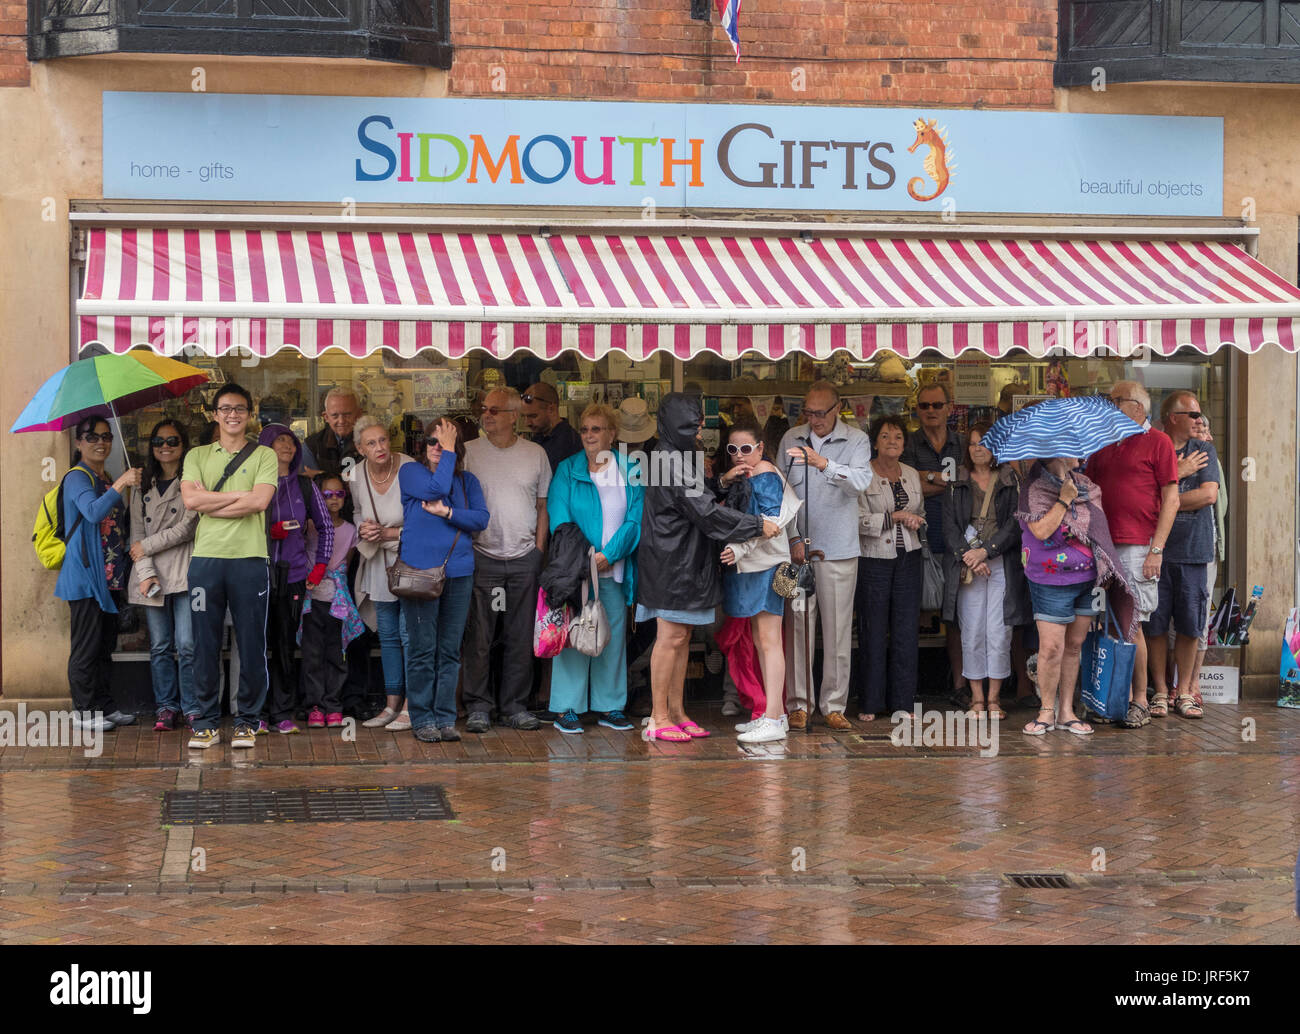 A crowd of people huddle together and shelter from the rain under a shop awning in Sidmouth, Devon. Stock Photo